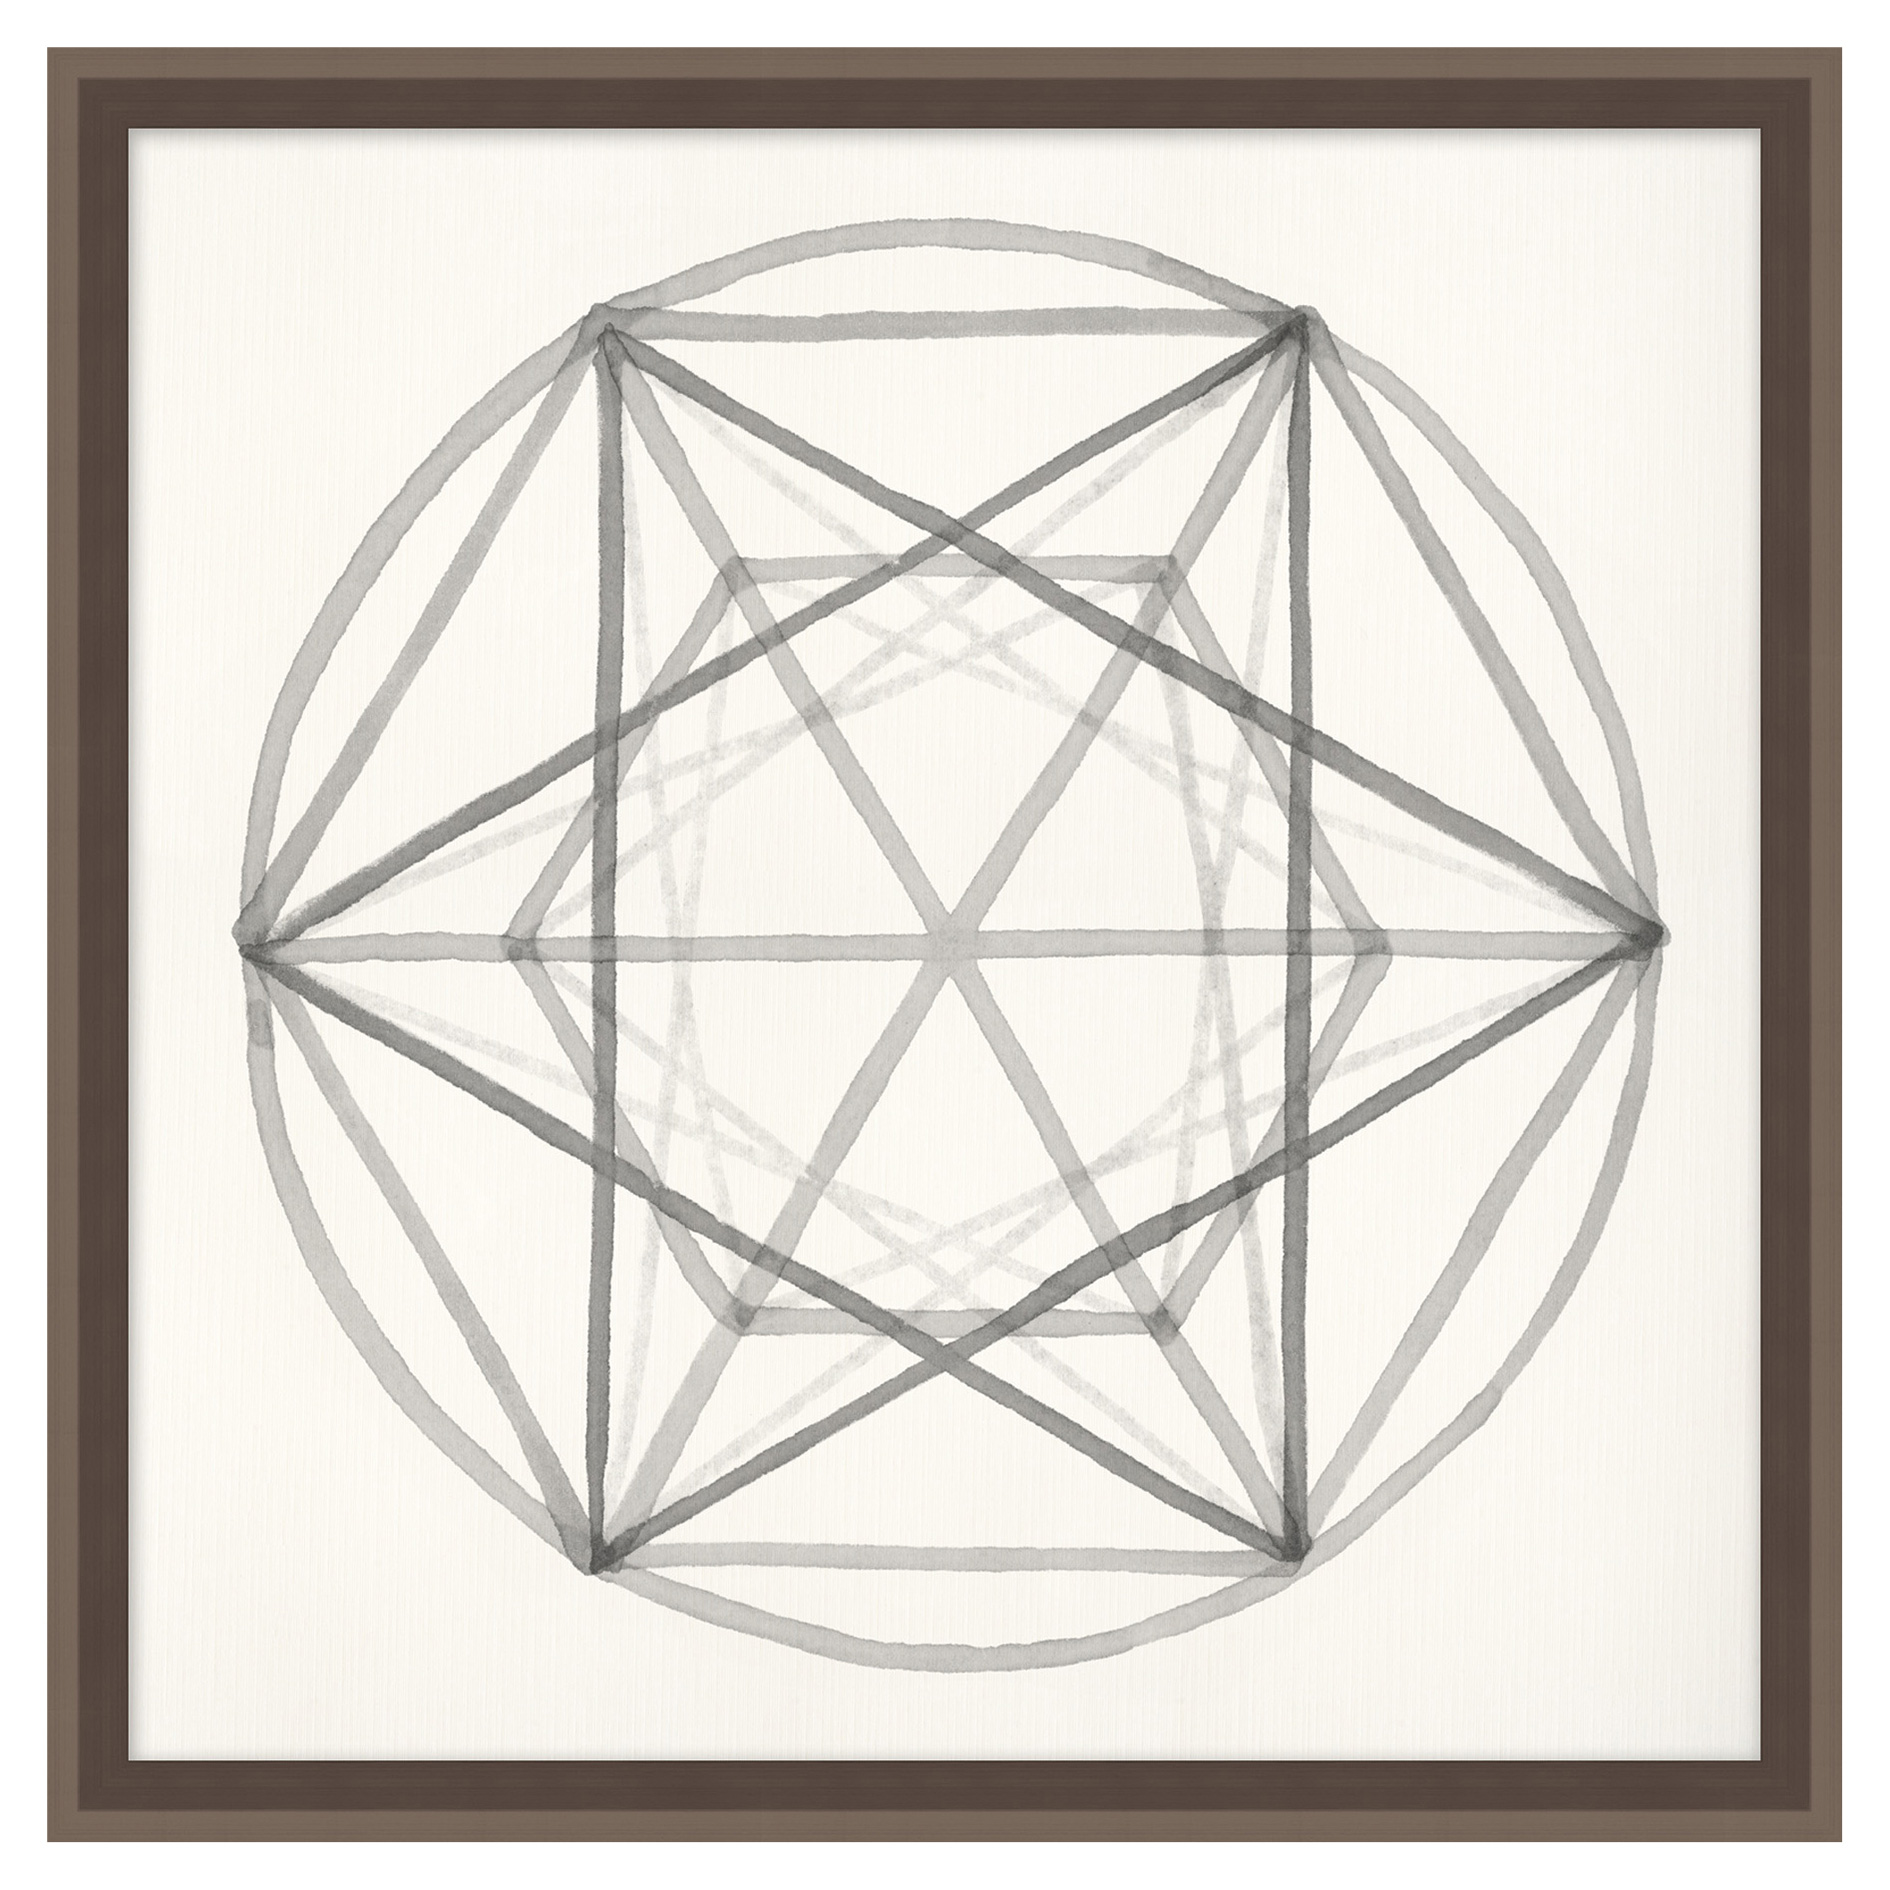 Geometry Platonic Solid Soft Grey Contemporary Art